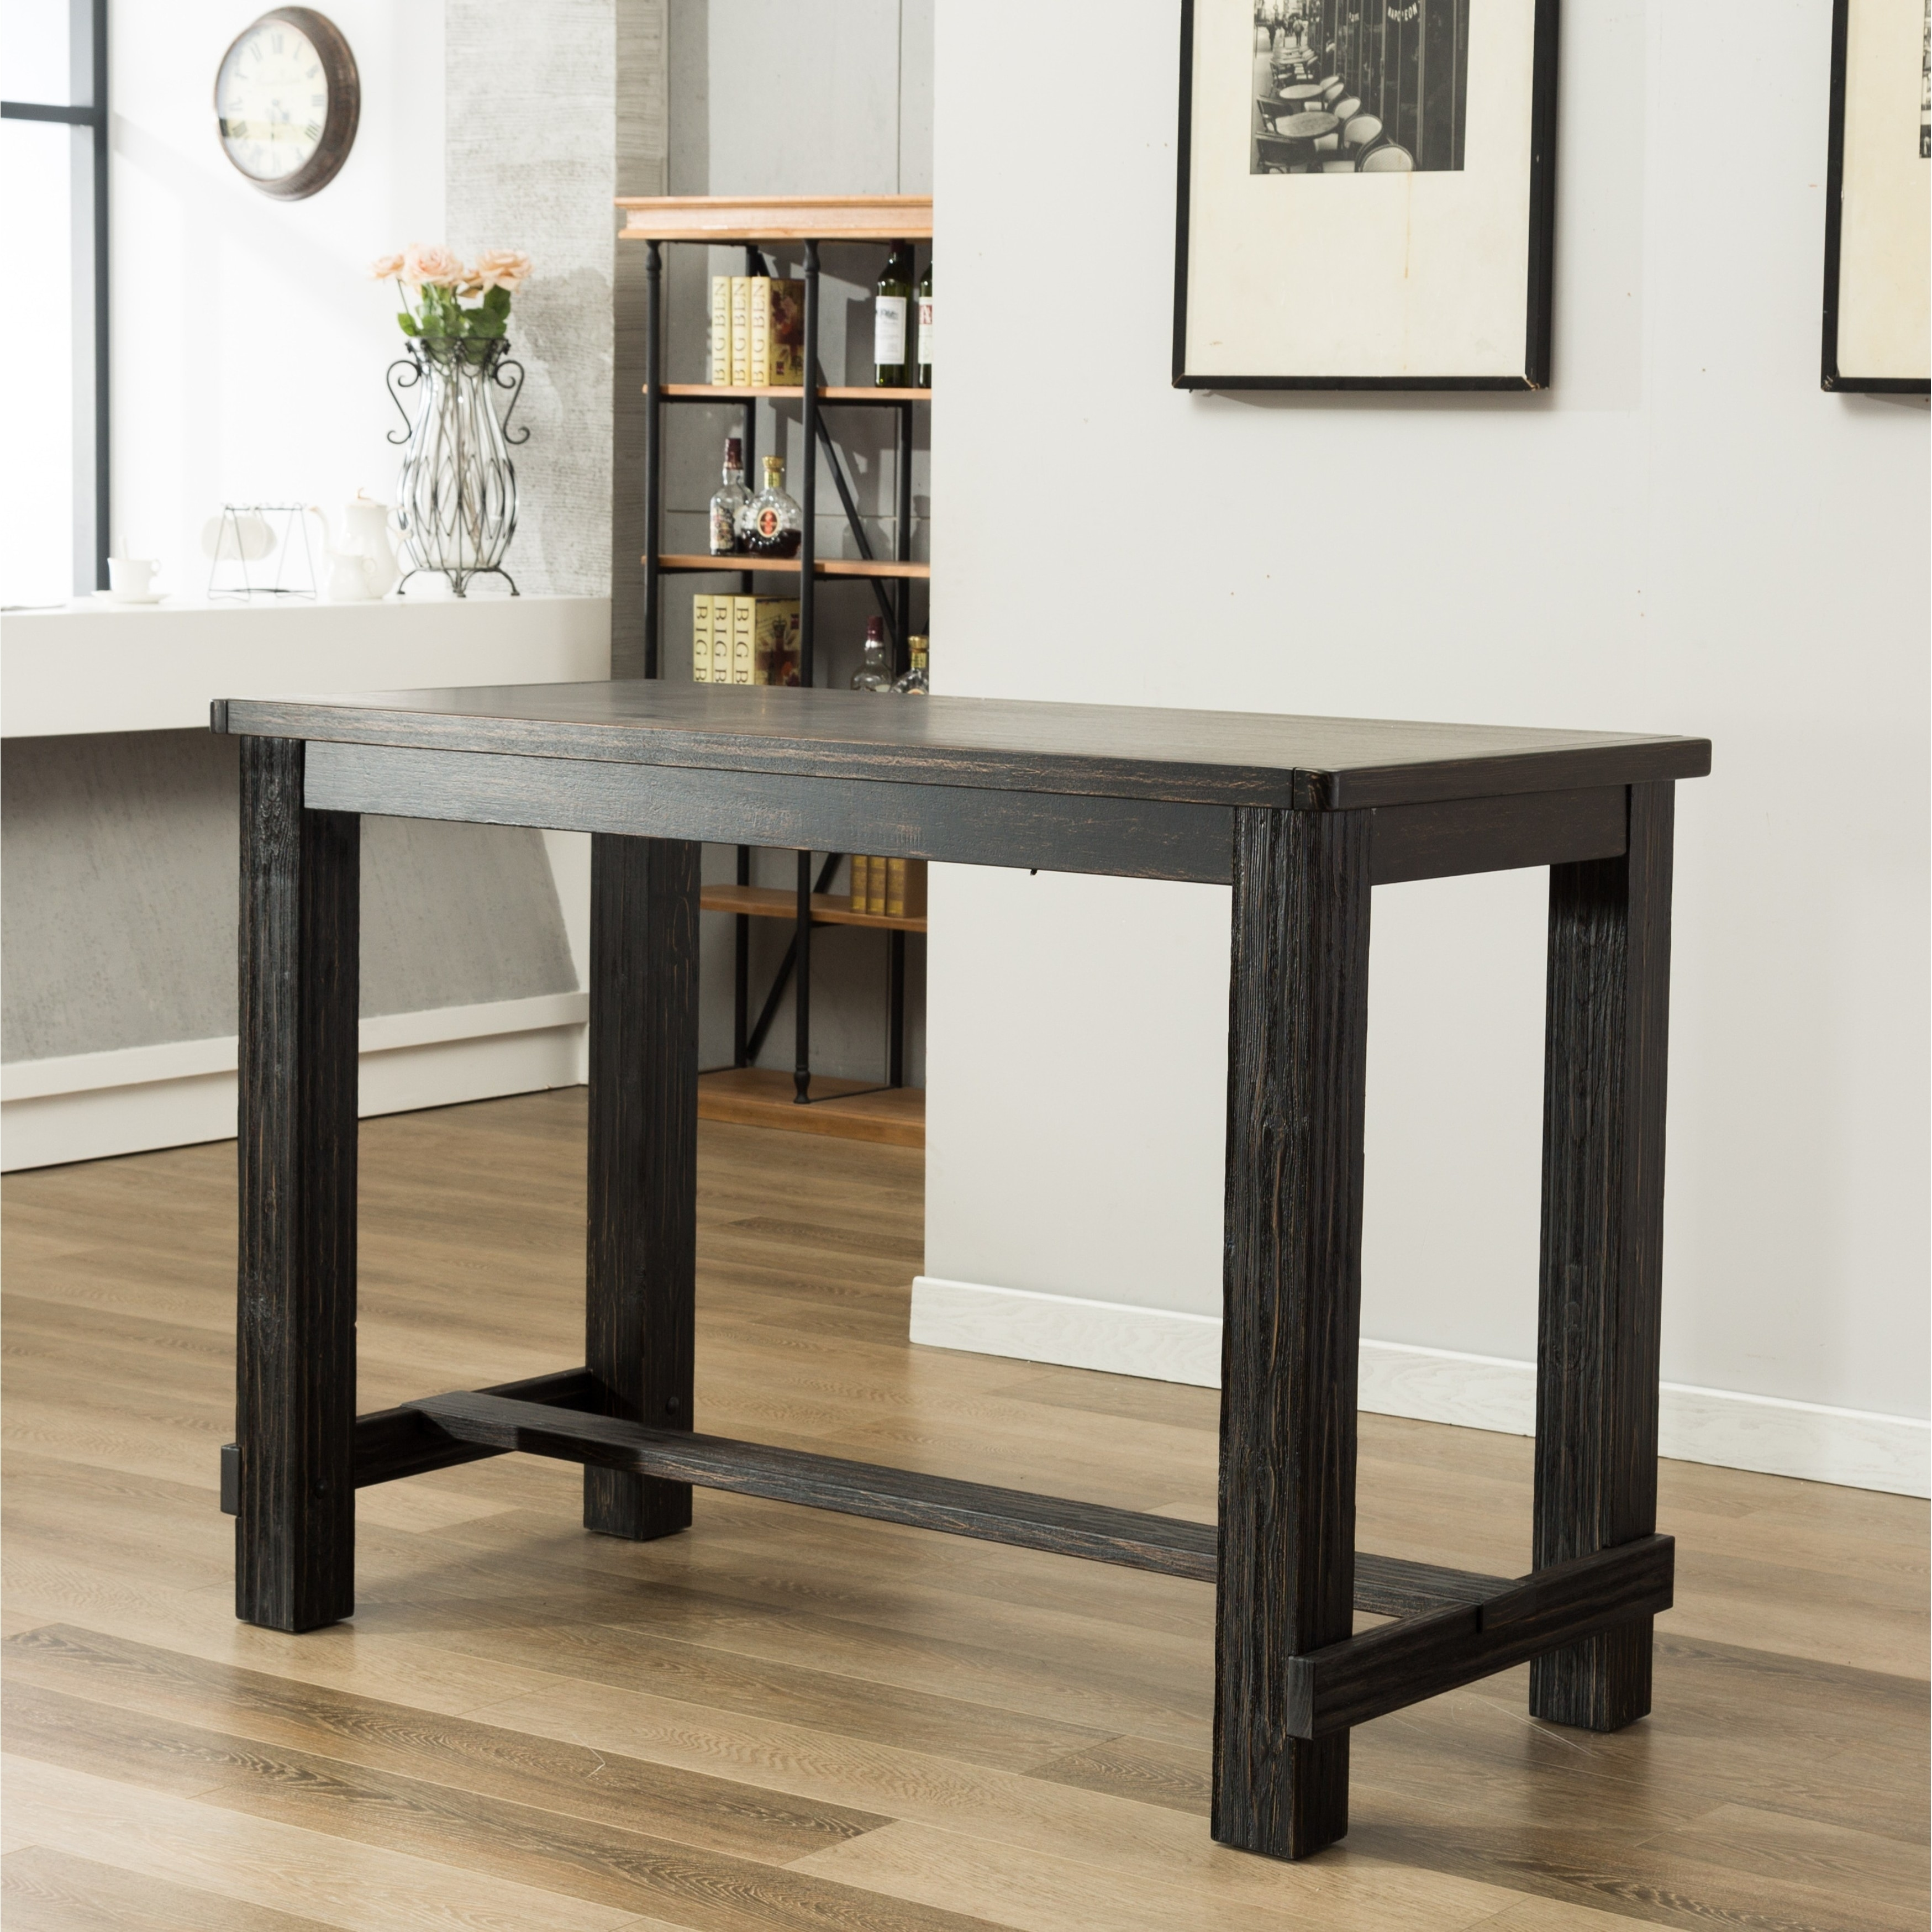 Lotusville Antique Black Rectangular Wood Bar Height Dining Table